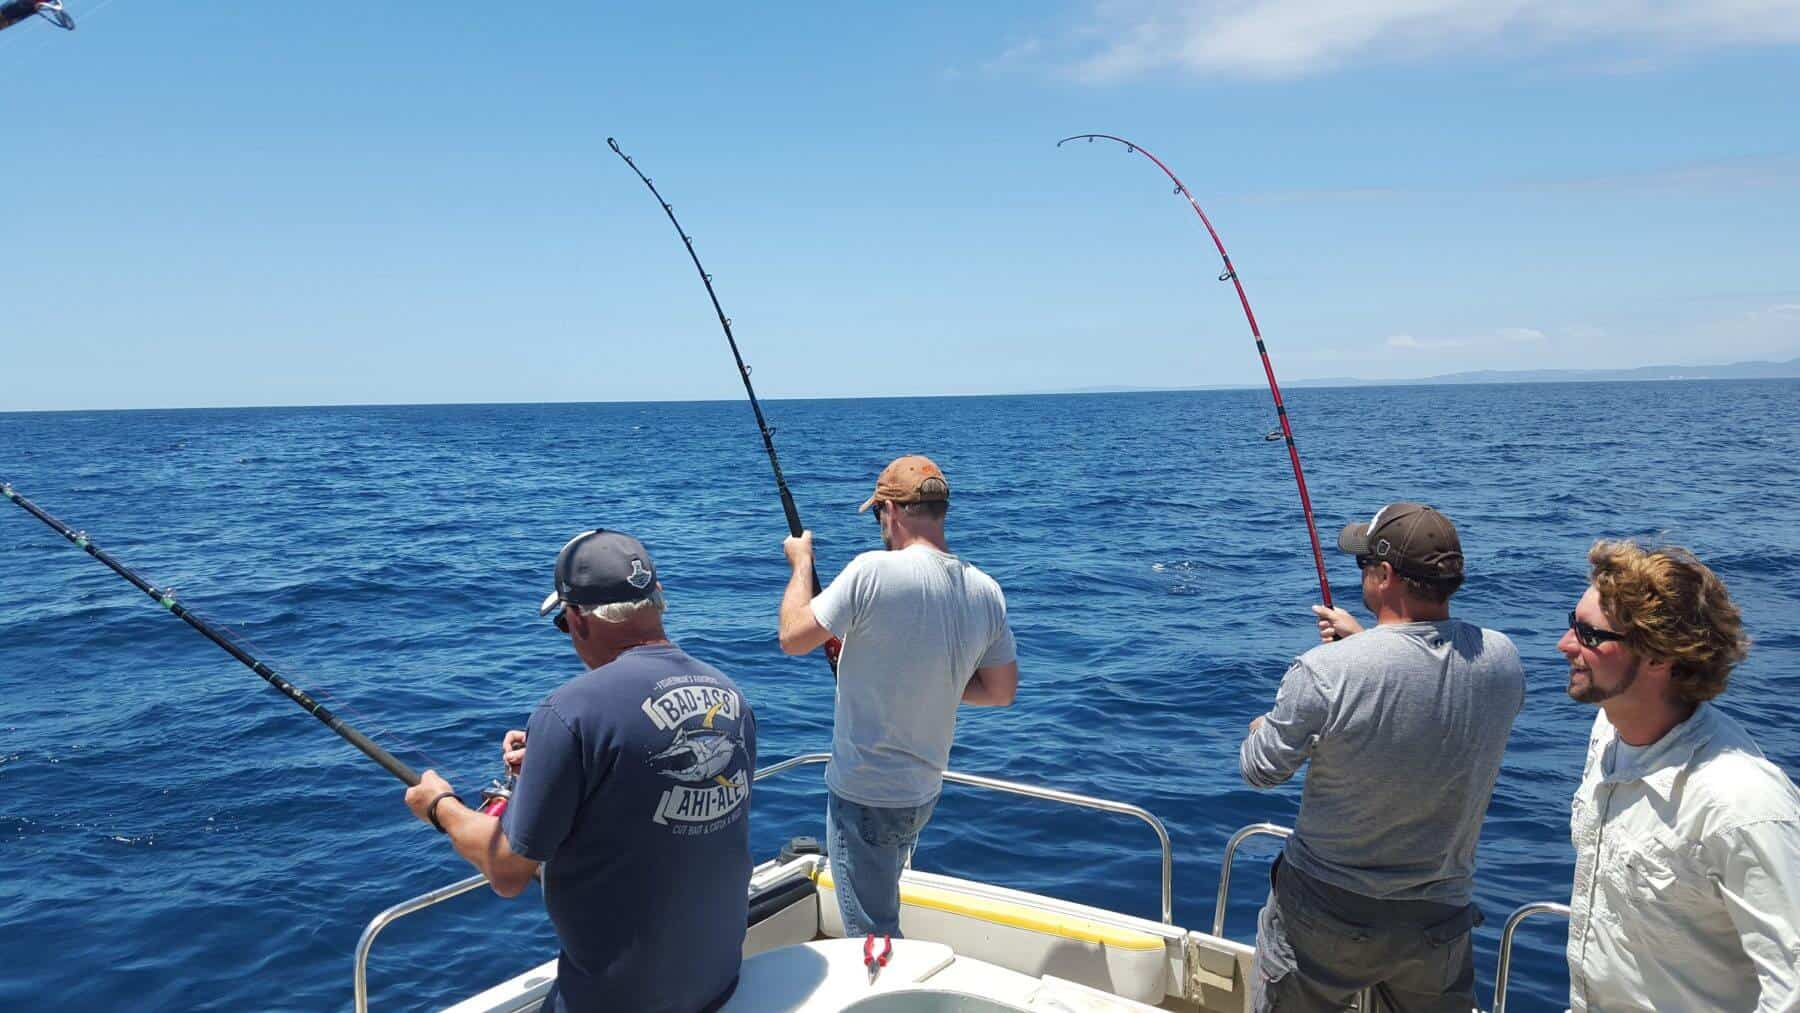 Fish taxi sportfishing and boat charters visit oceanside for Southern california fishing charters